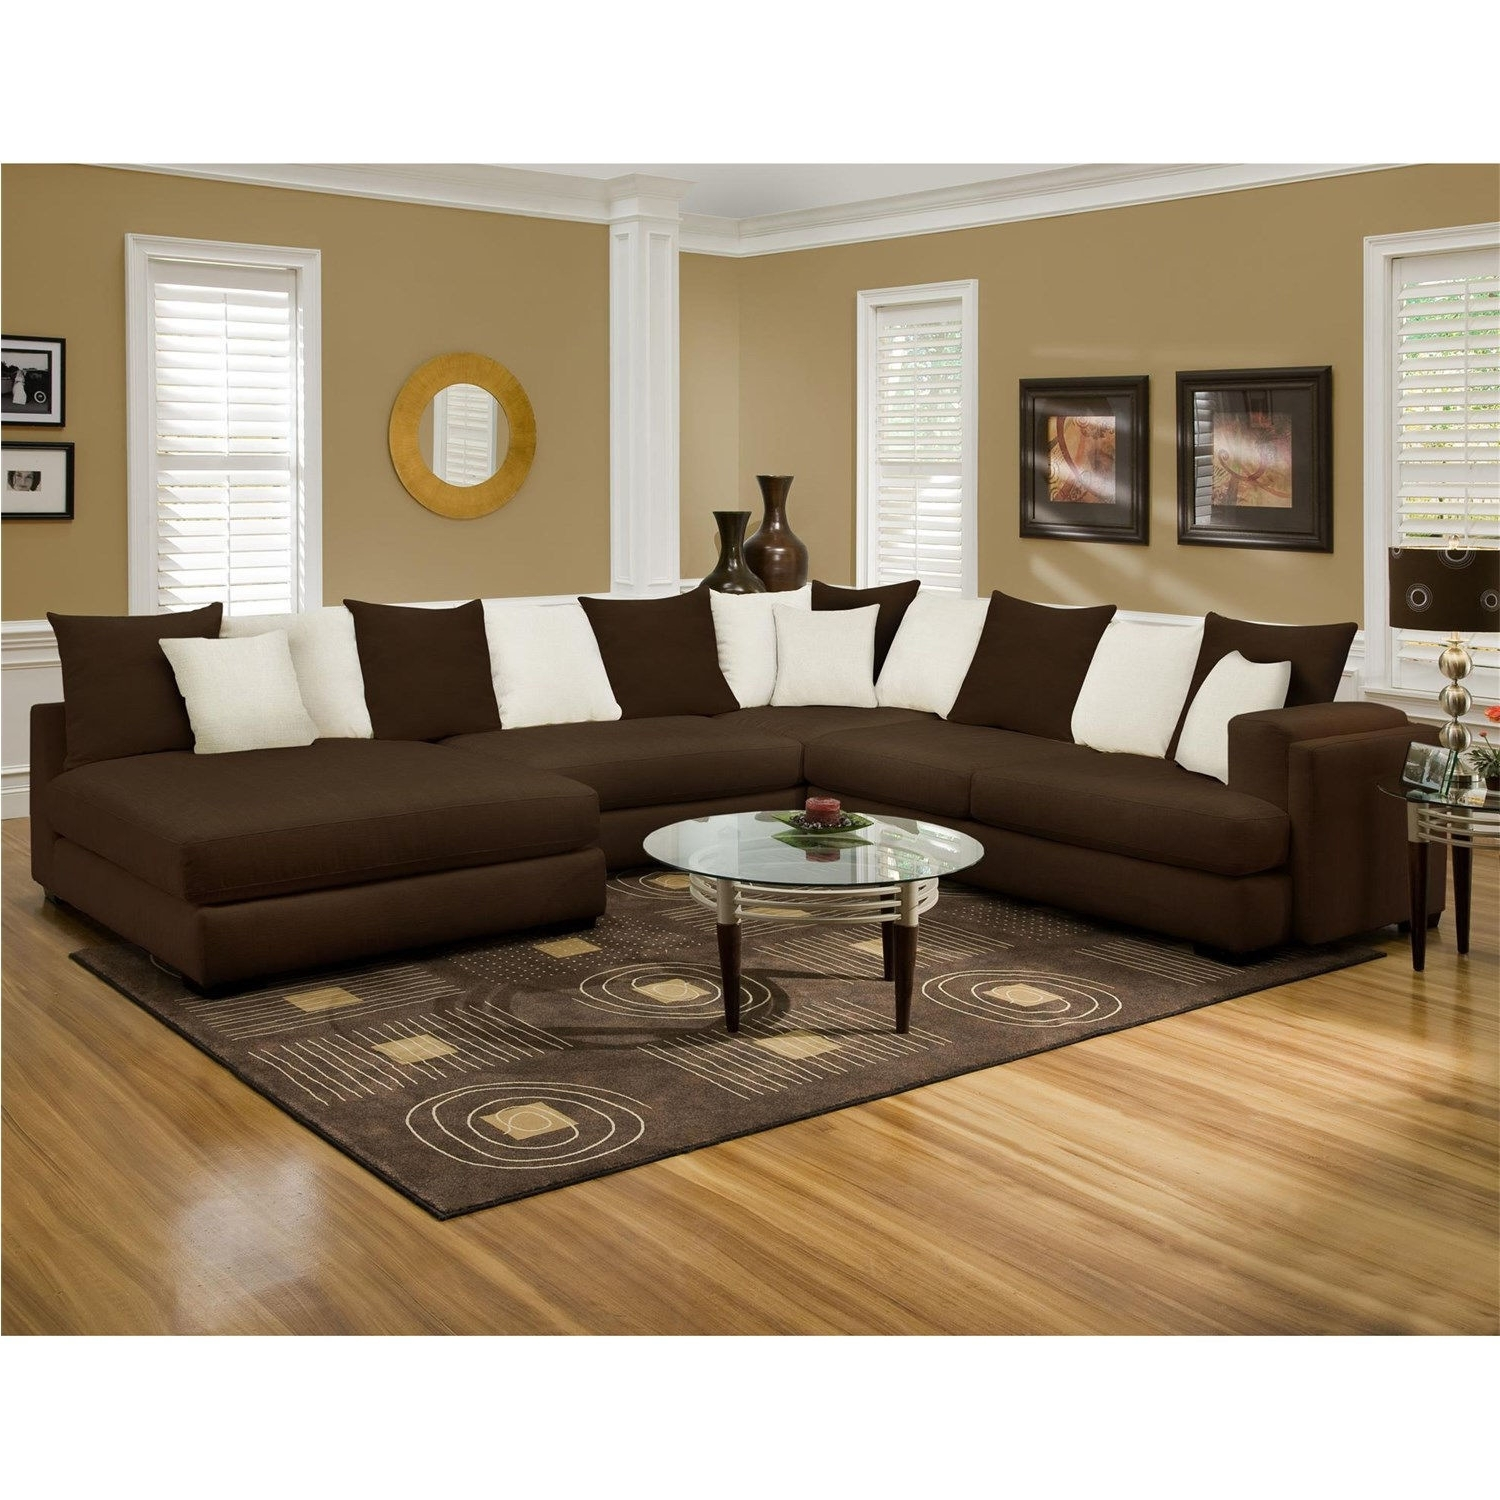 Lb Discount Furniture Sectional Sofas Houston Tx Bel Furniture With Regard To Best And Newest Sectional Sofas In Houston Tx (View 12 of 20)